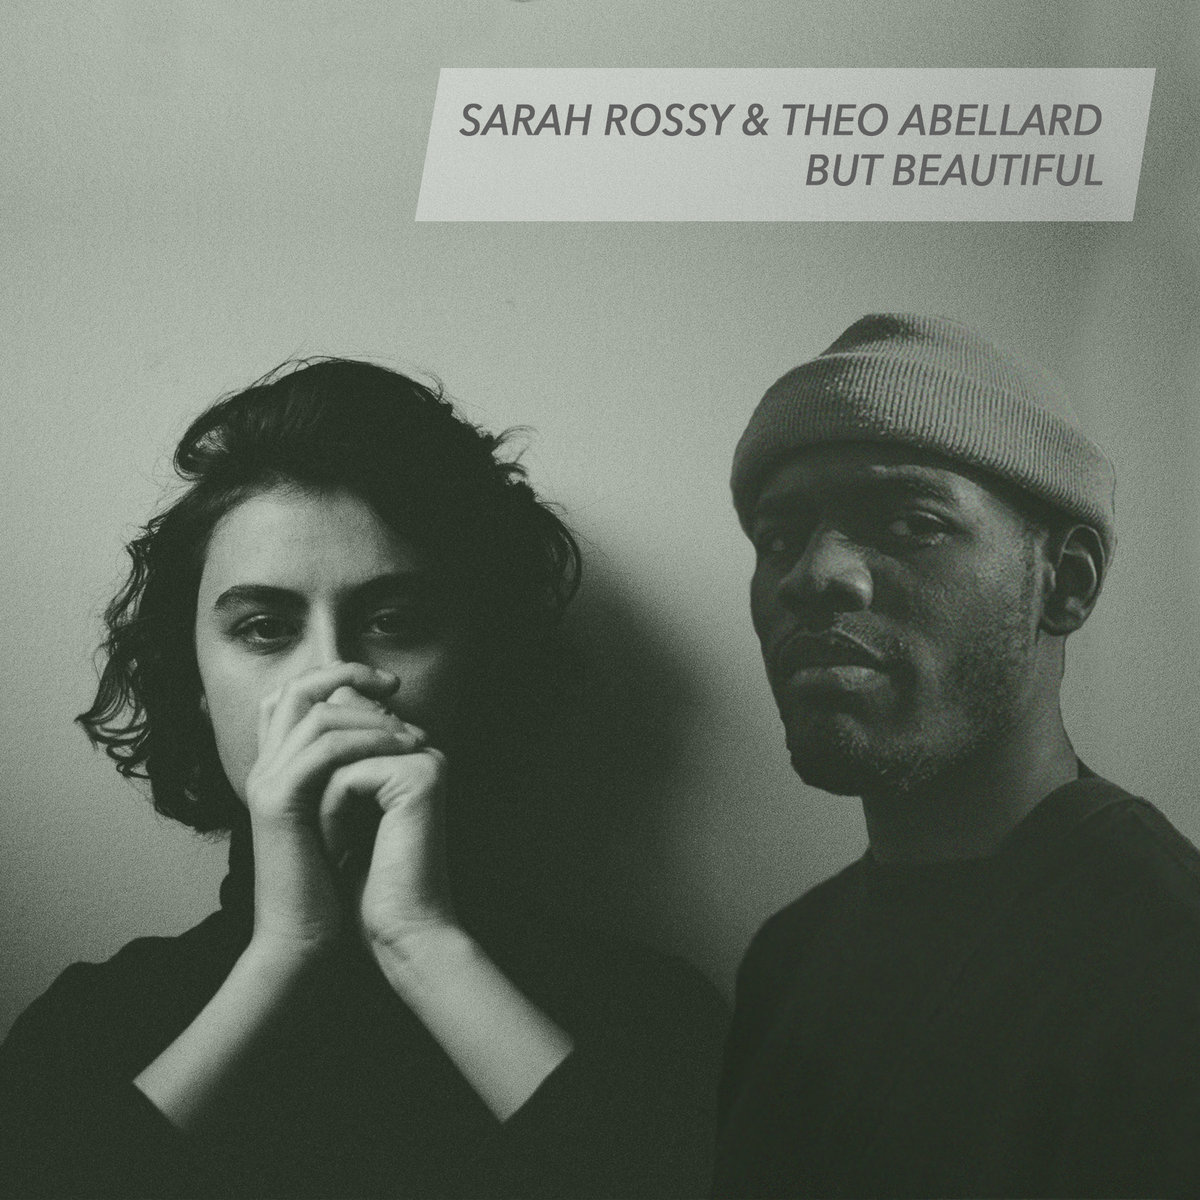 But Beautiful by Sarah Rossy & Theo Abellard